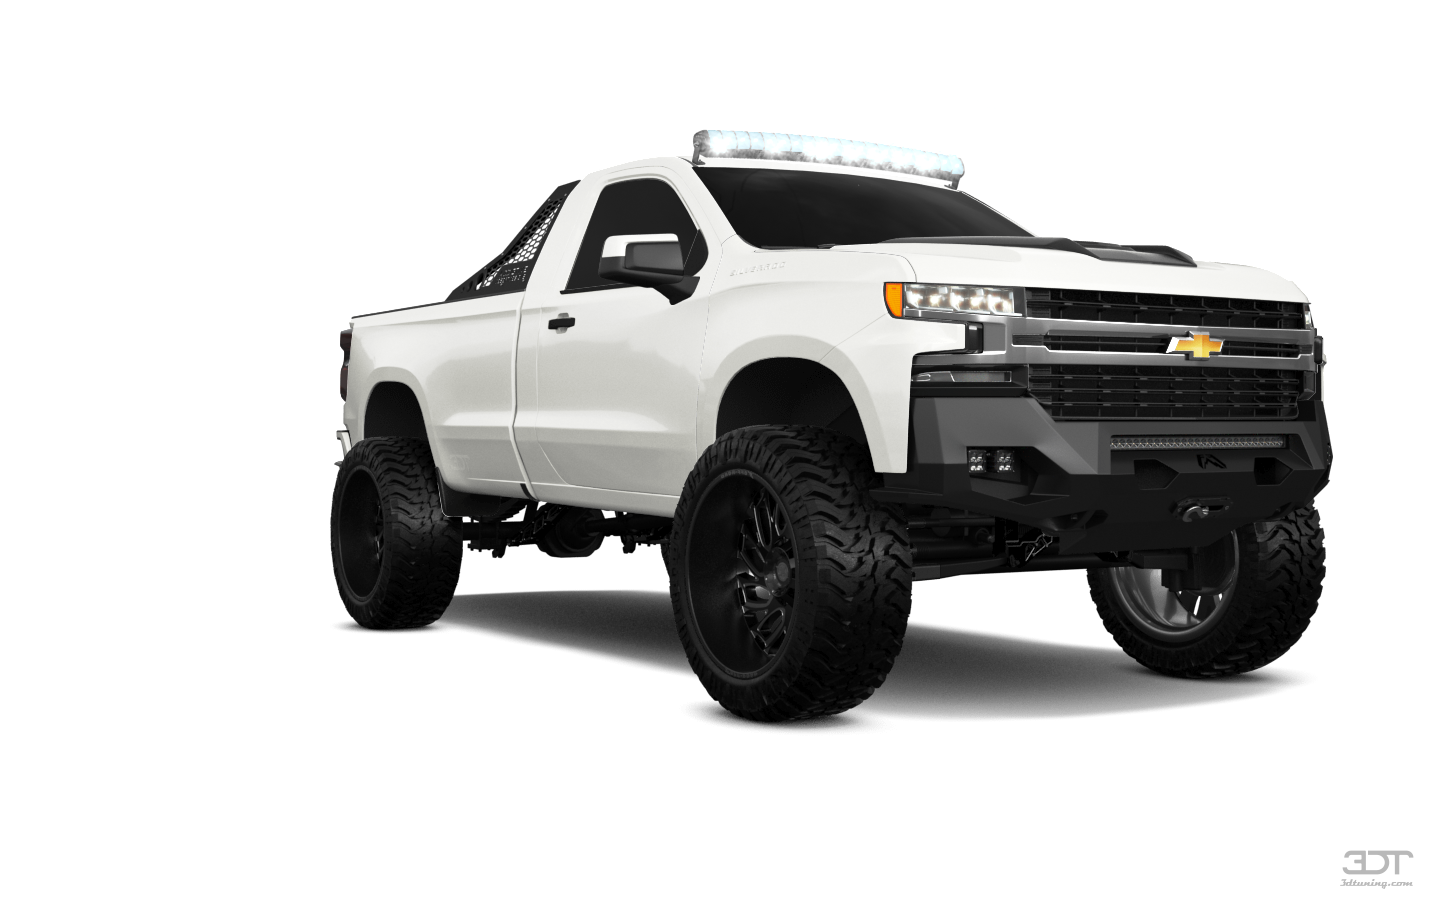 Chevrolet Silverado 1500 Regular Cab'19